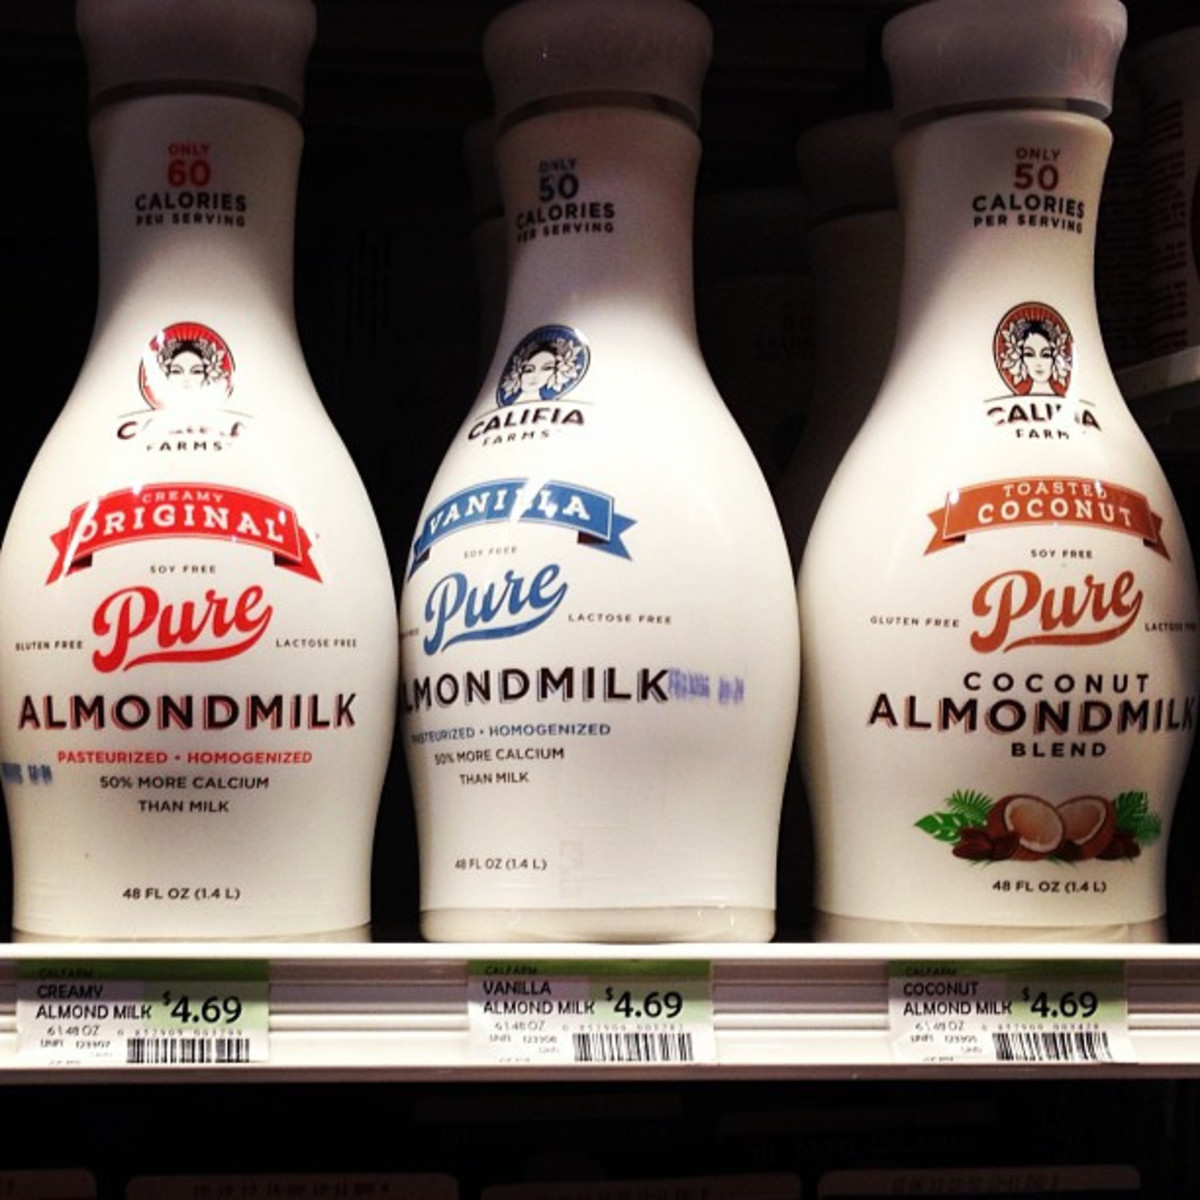 Some milks even mix almonds and coconut together to give you an almost perfect alternative to milk! Yum!